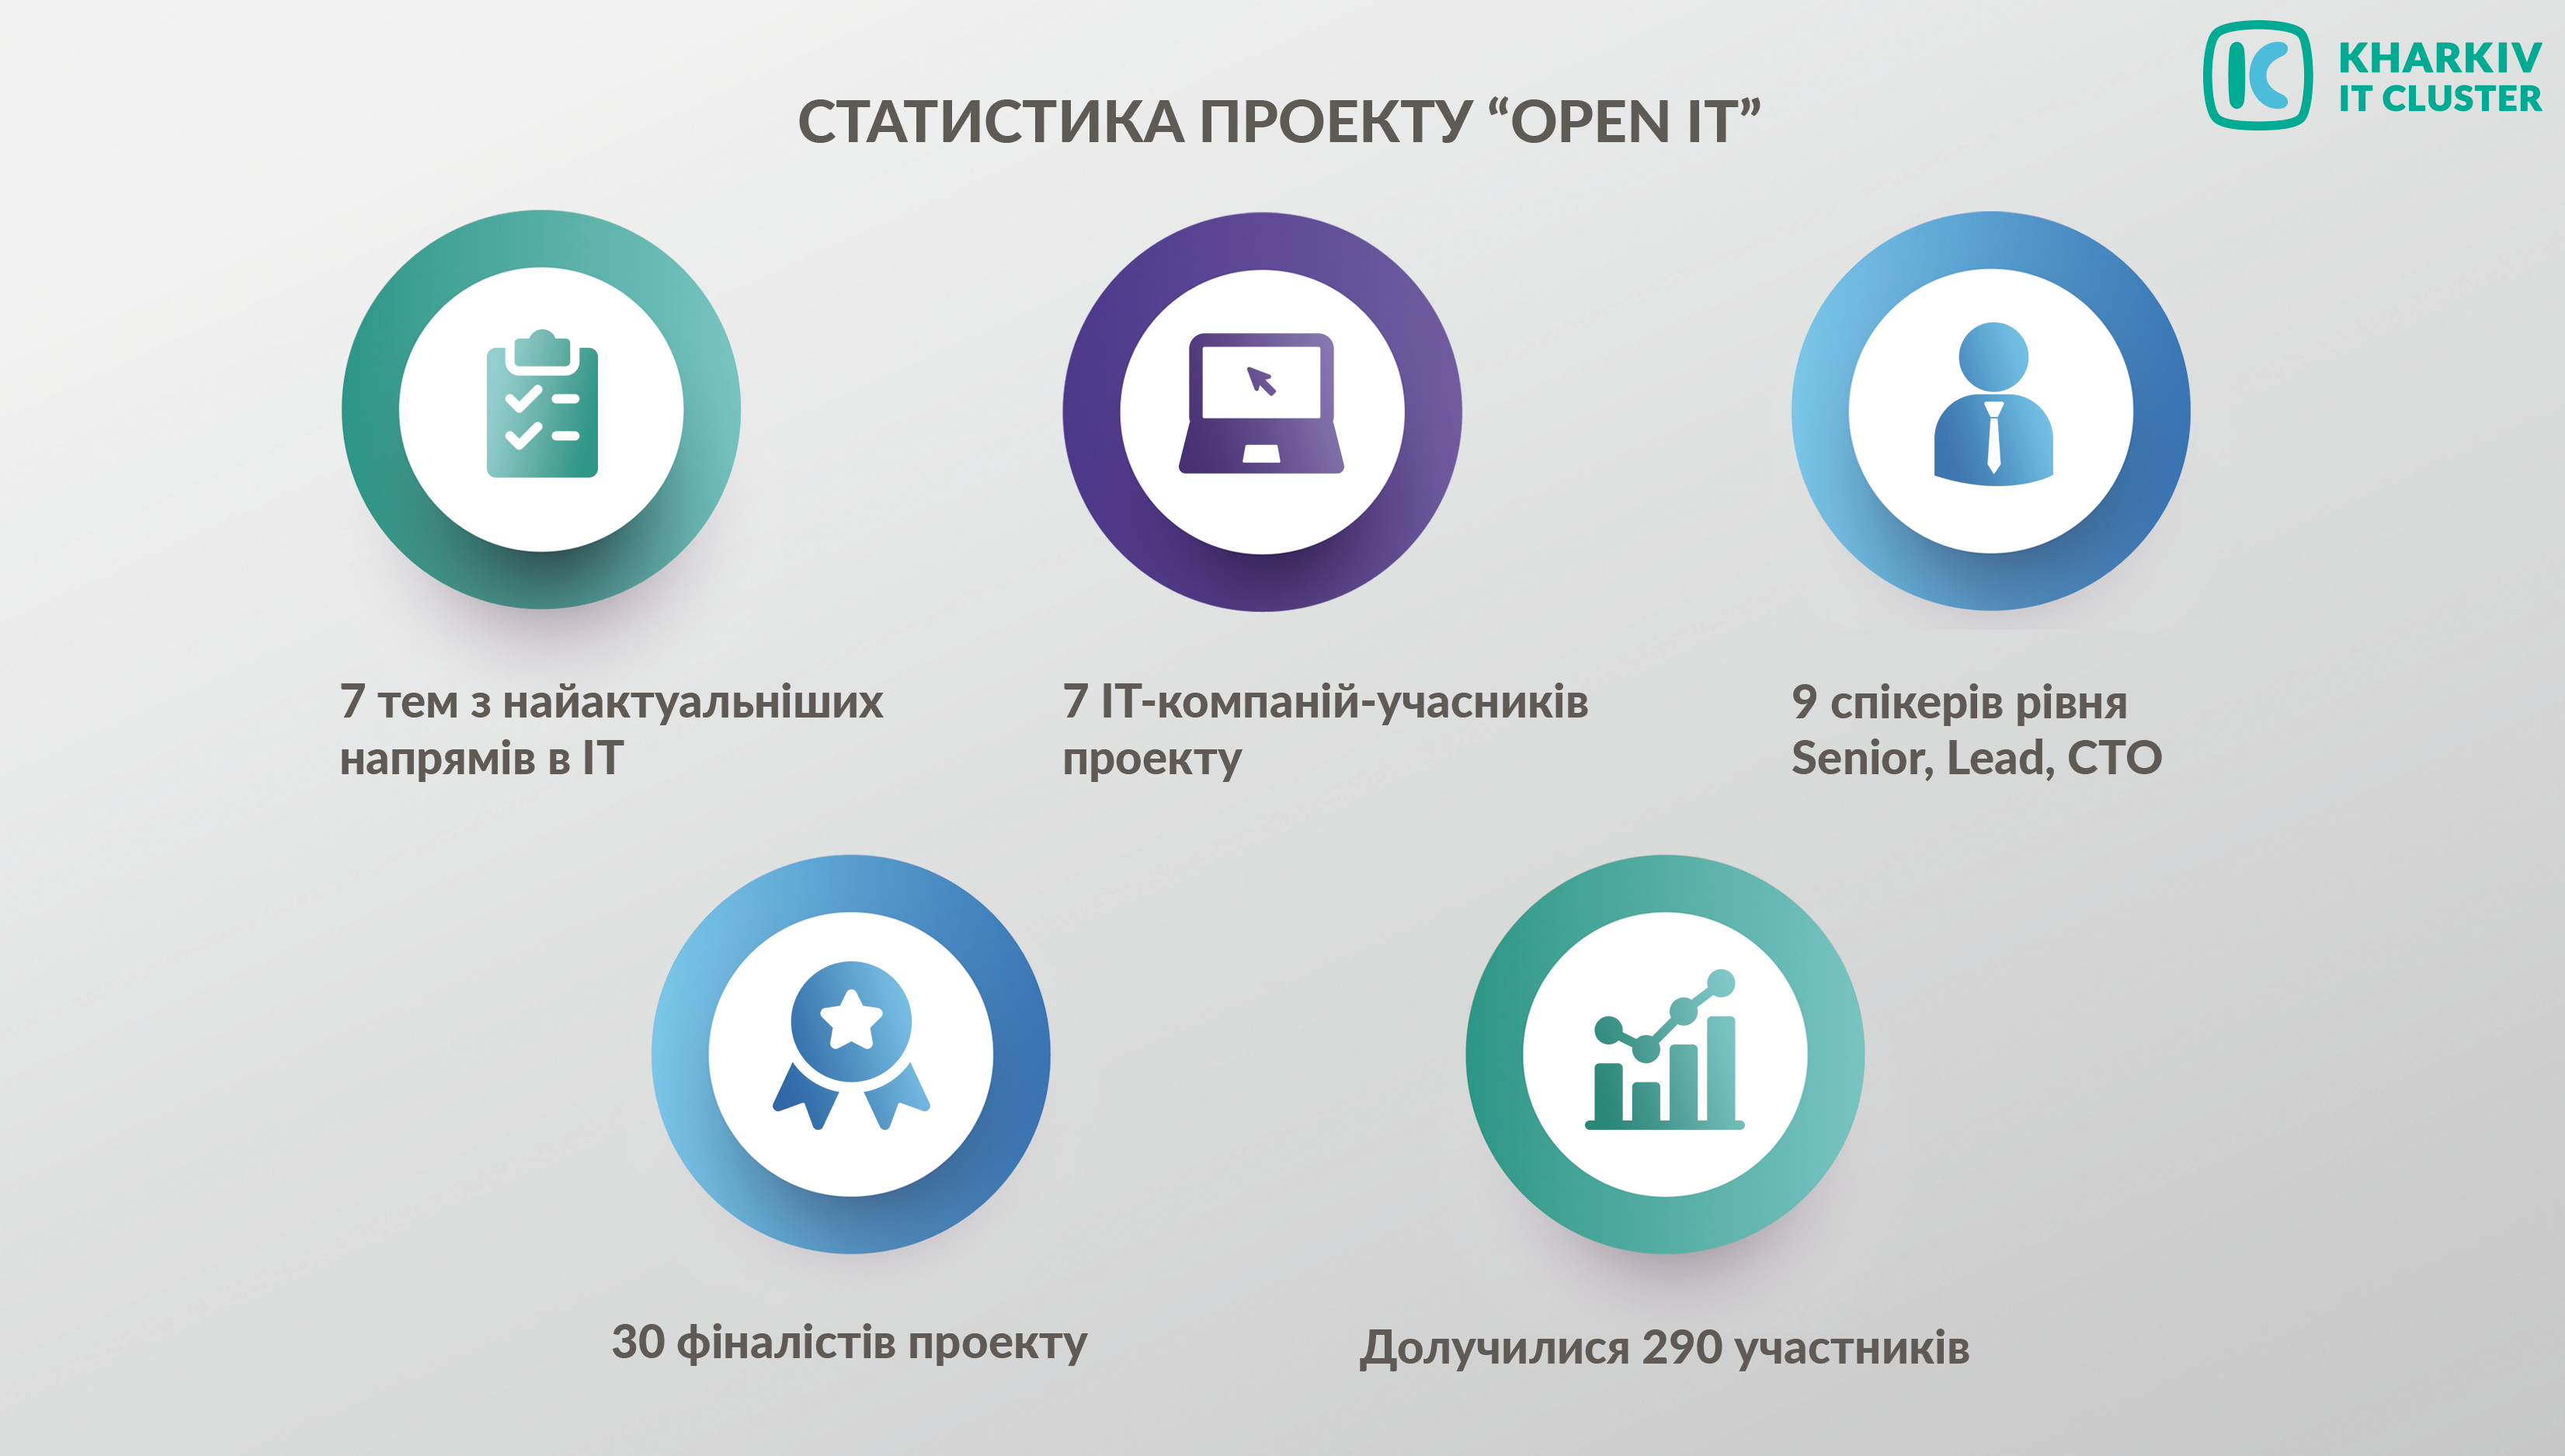 infographics2.3-1 OPEN IT SUMMARIES AND PROSPECTS